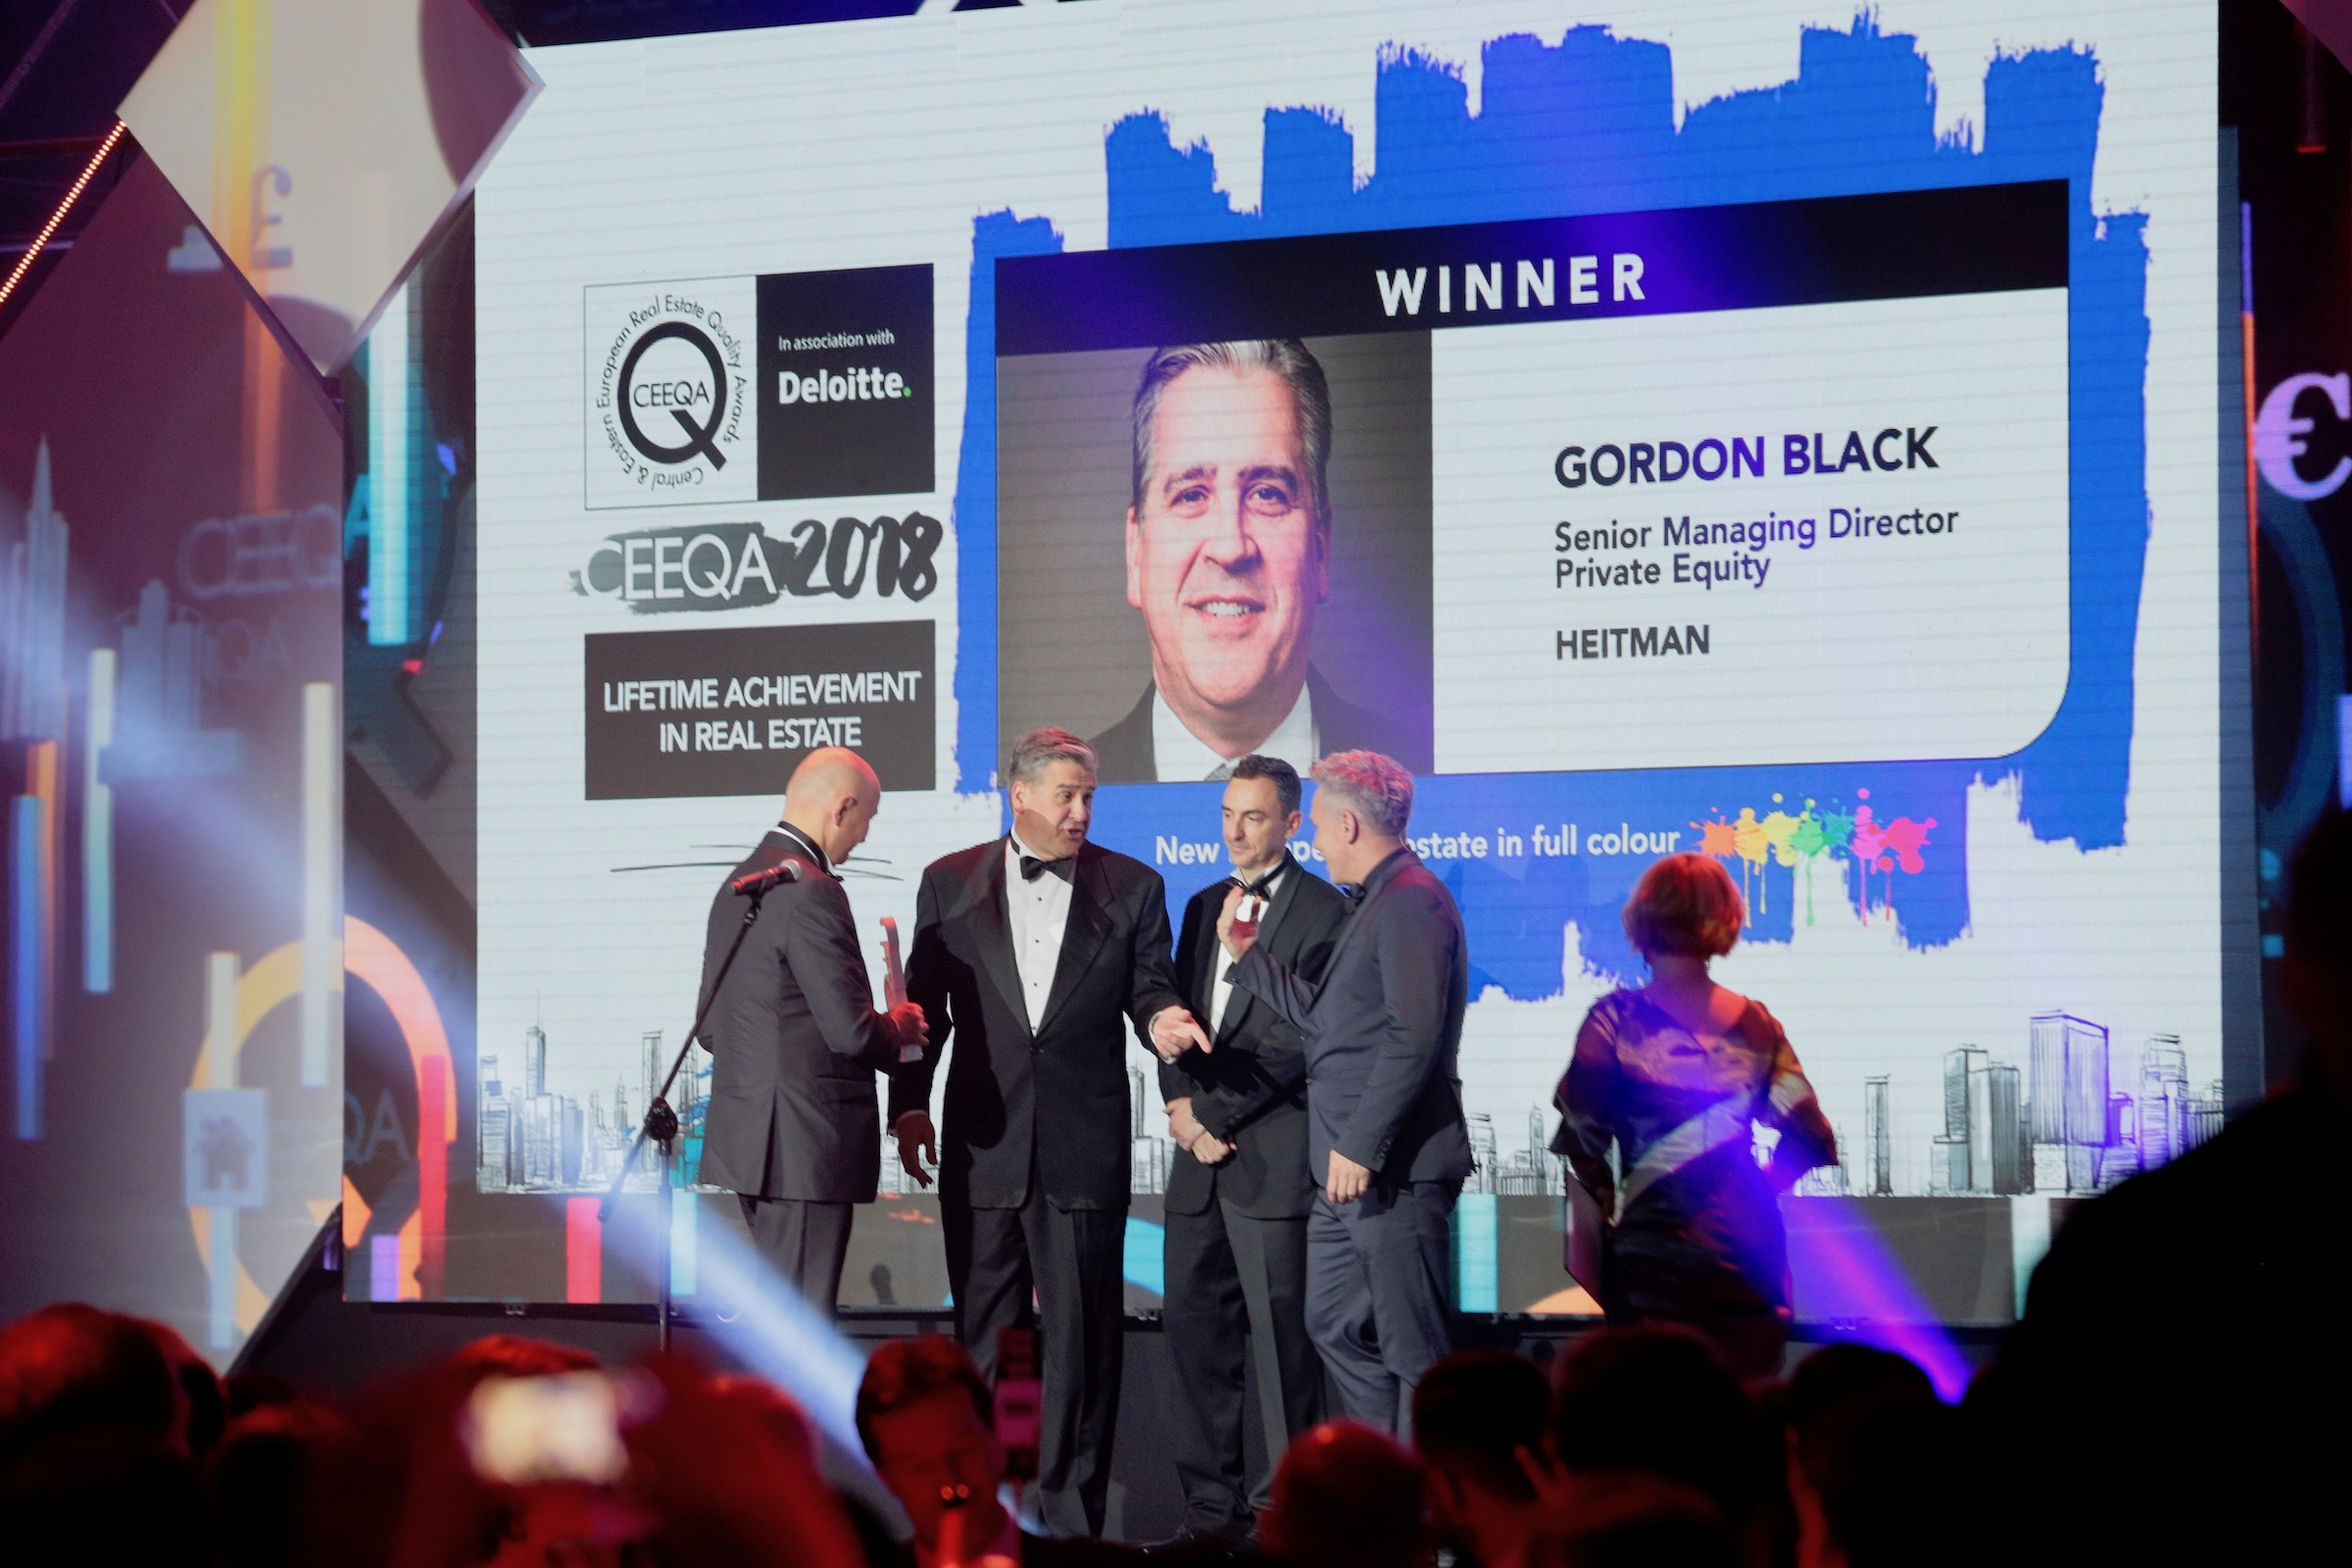 CEEQA | Gordon Black | Lifetime Achievement in Real Estate